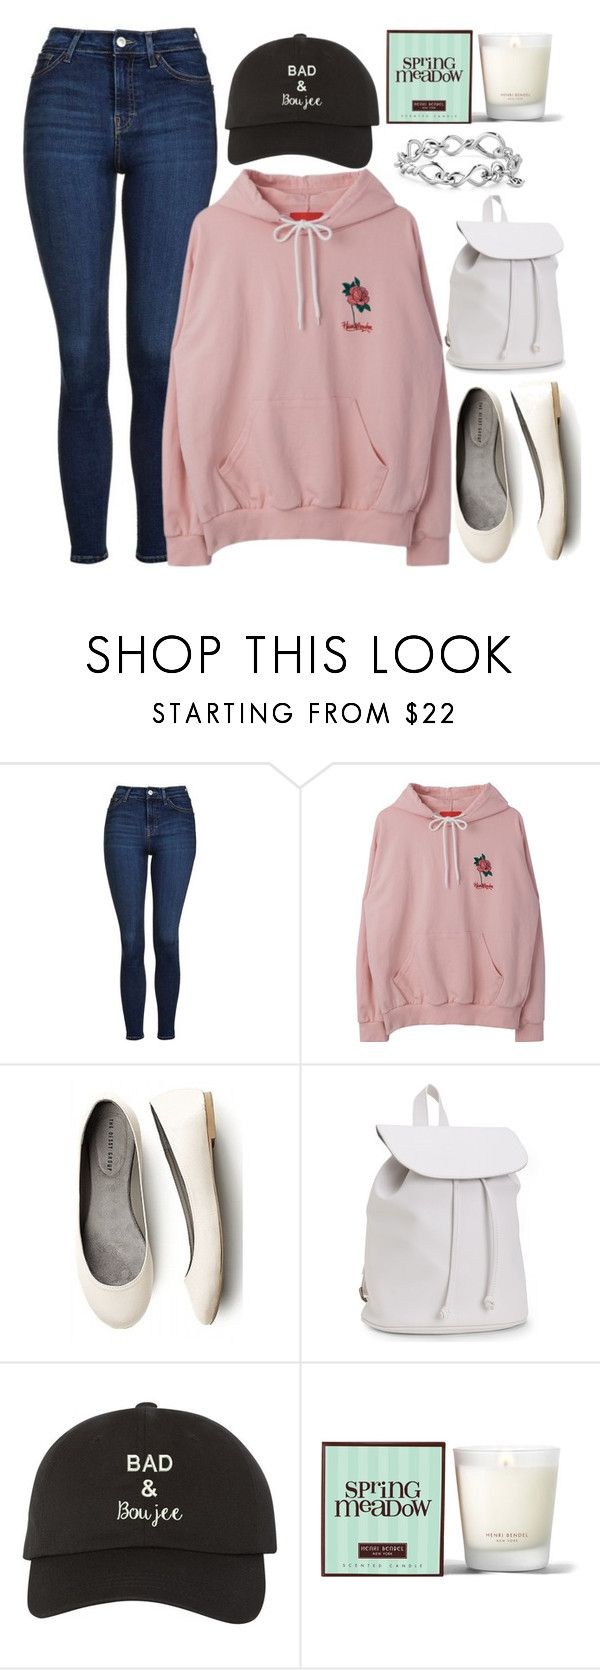 """Spring Meadow"" by luckystrawberry ❤ liked on Polyvore featuring Topshop, Aéropostale, Henri Bendel and David Yurman"